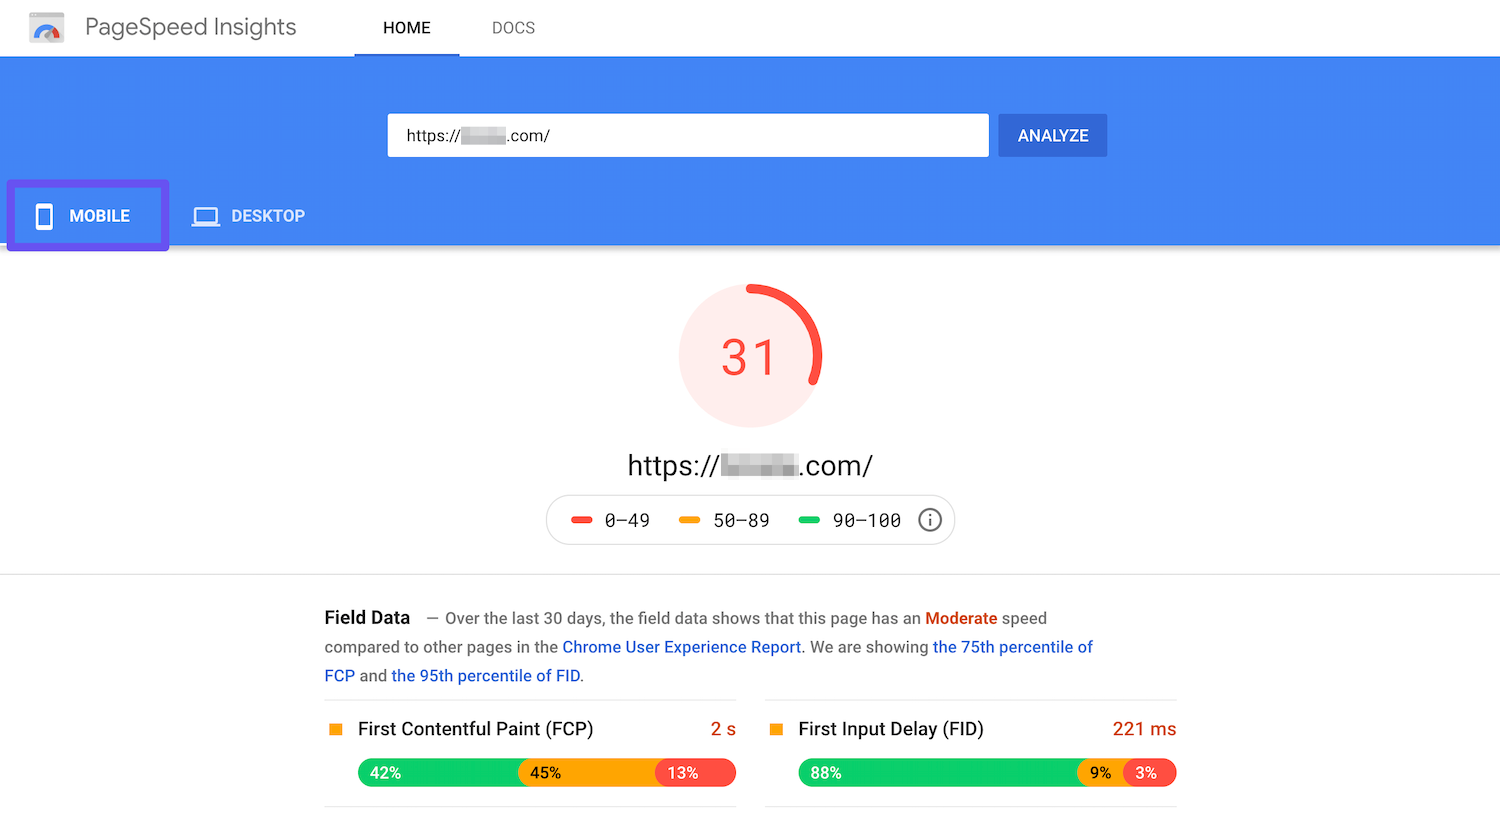 Scheda Mobile in Google PageSpeed Insights